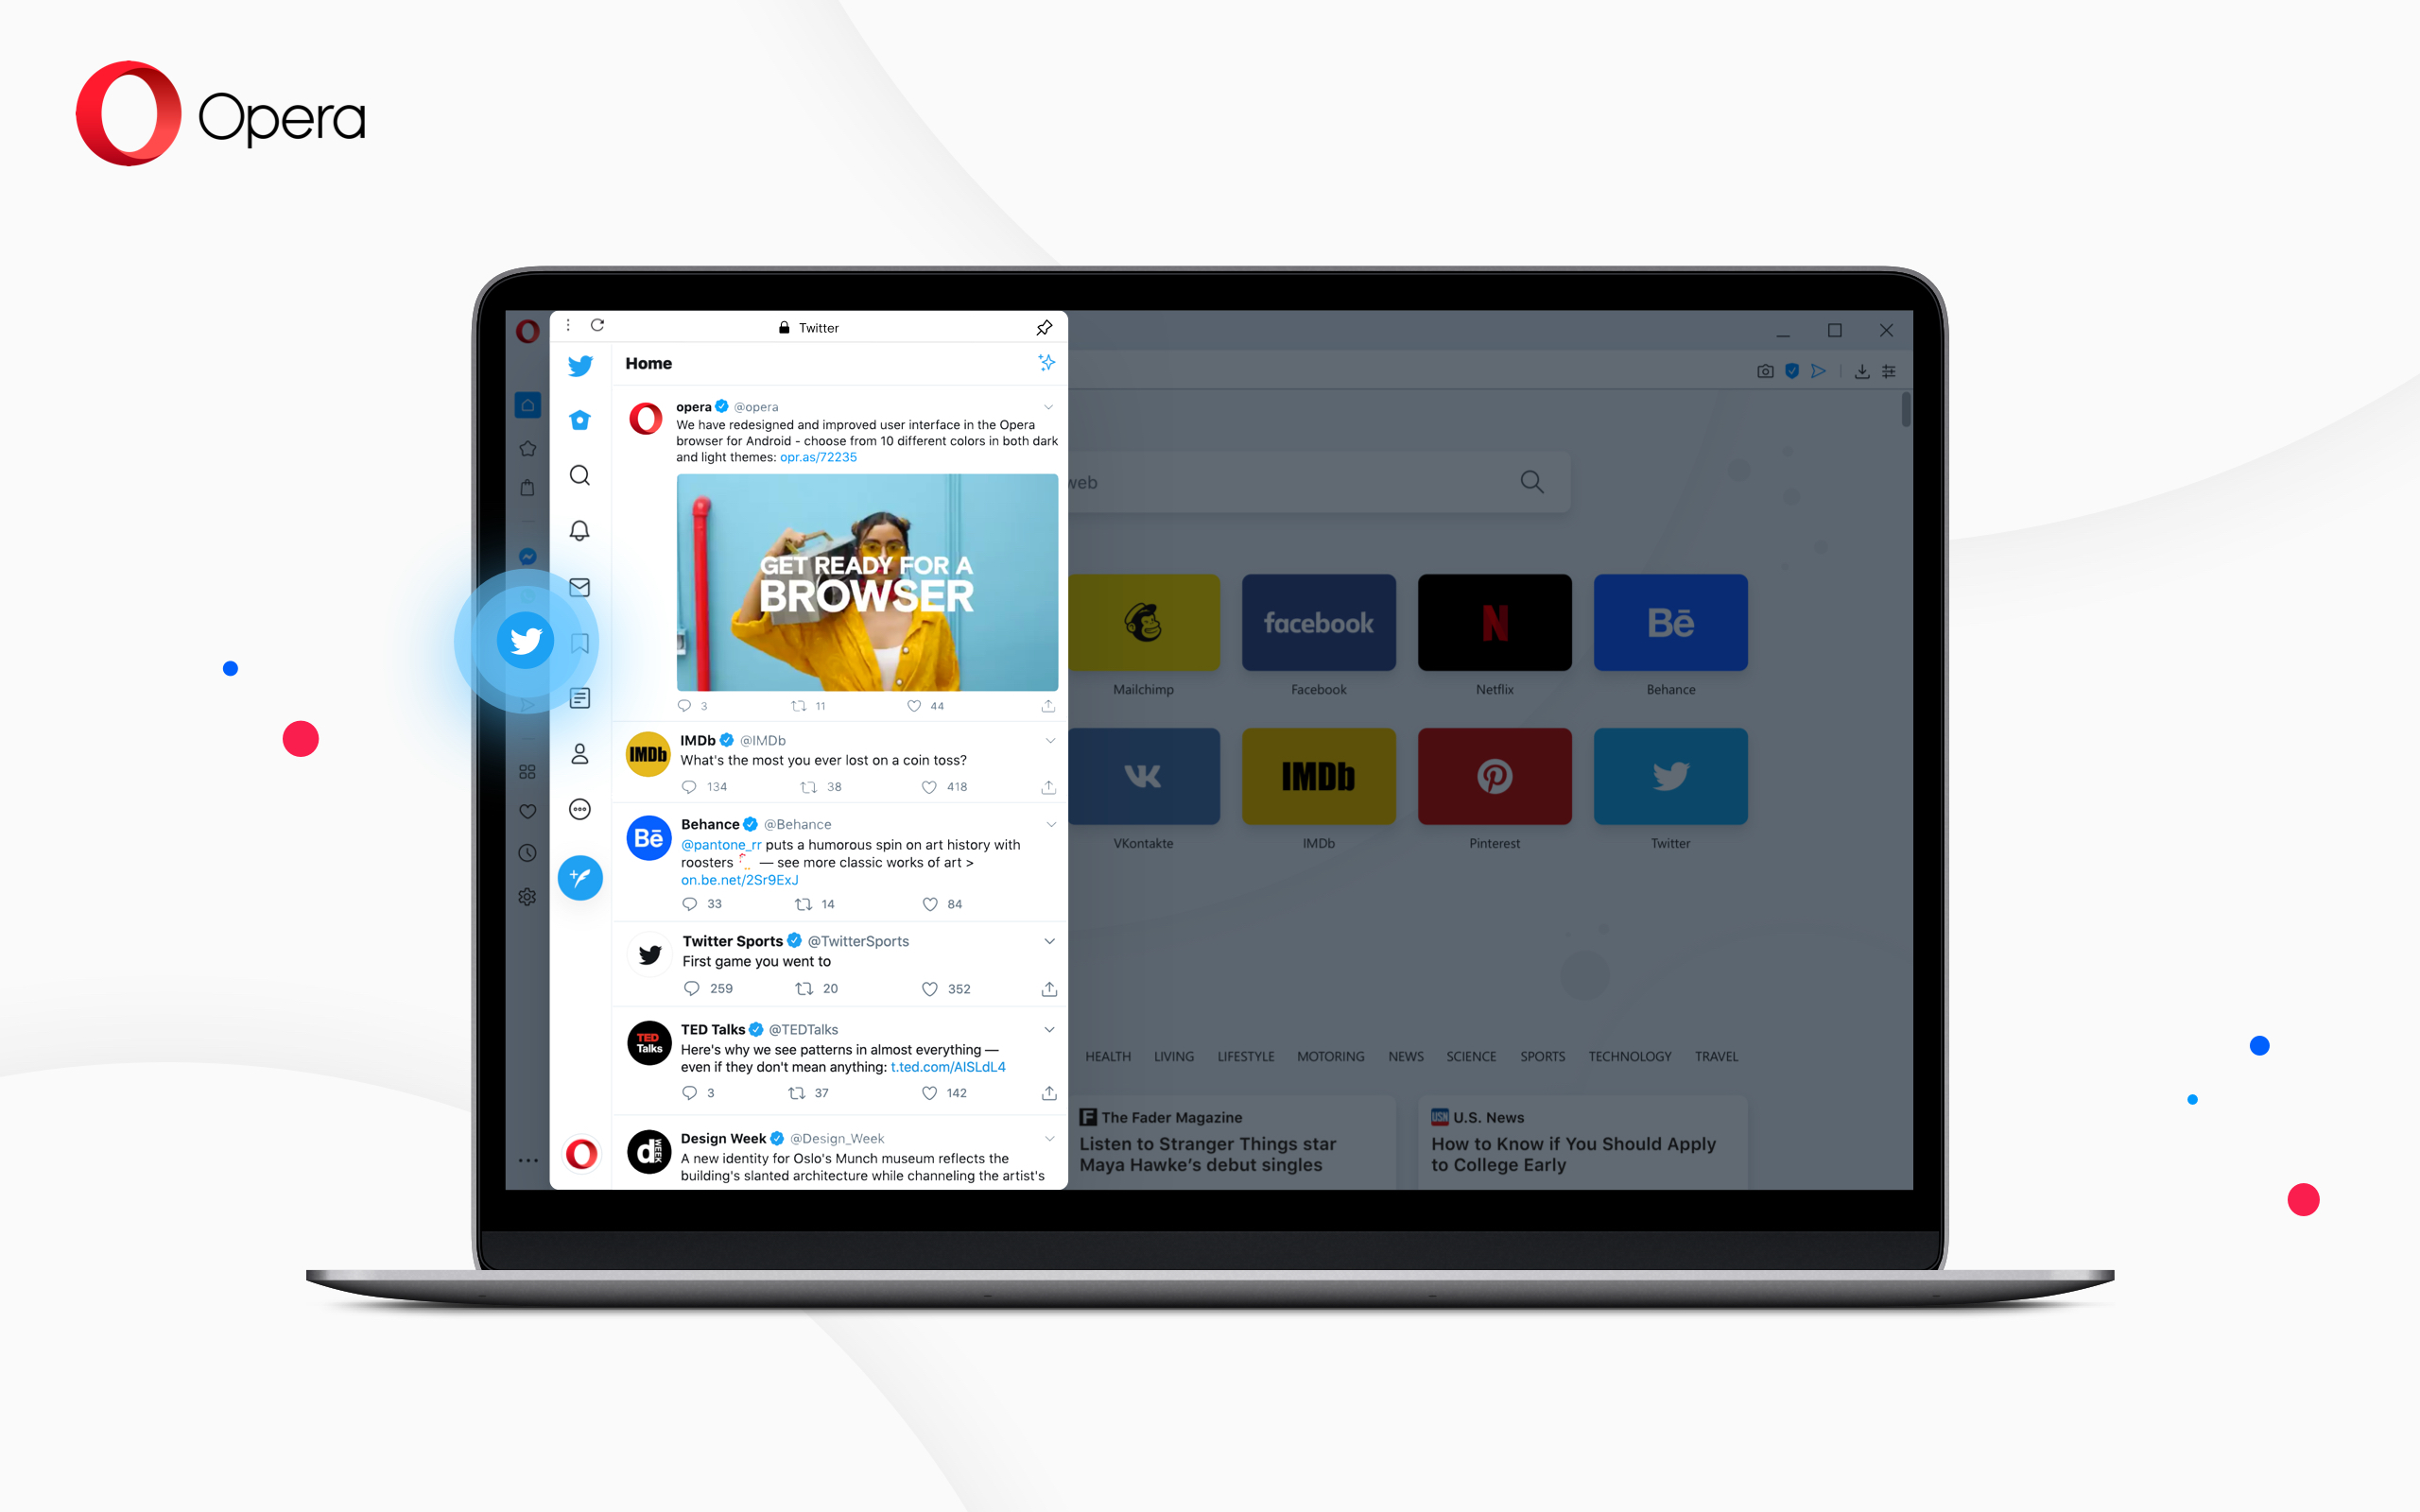 Opera desktop now with built-in Twitter